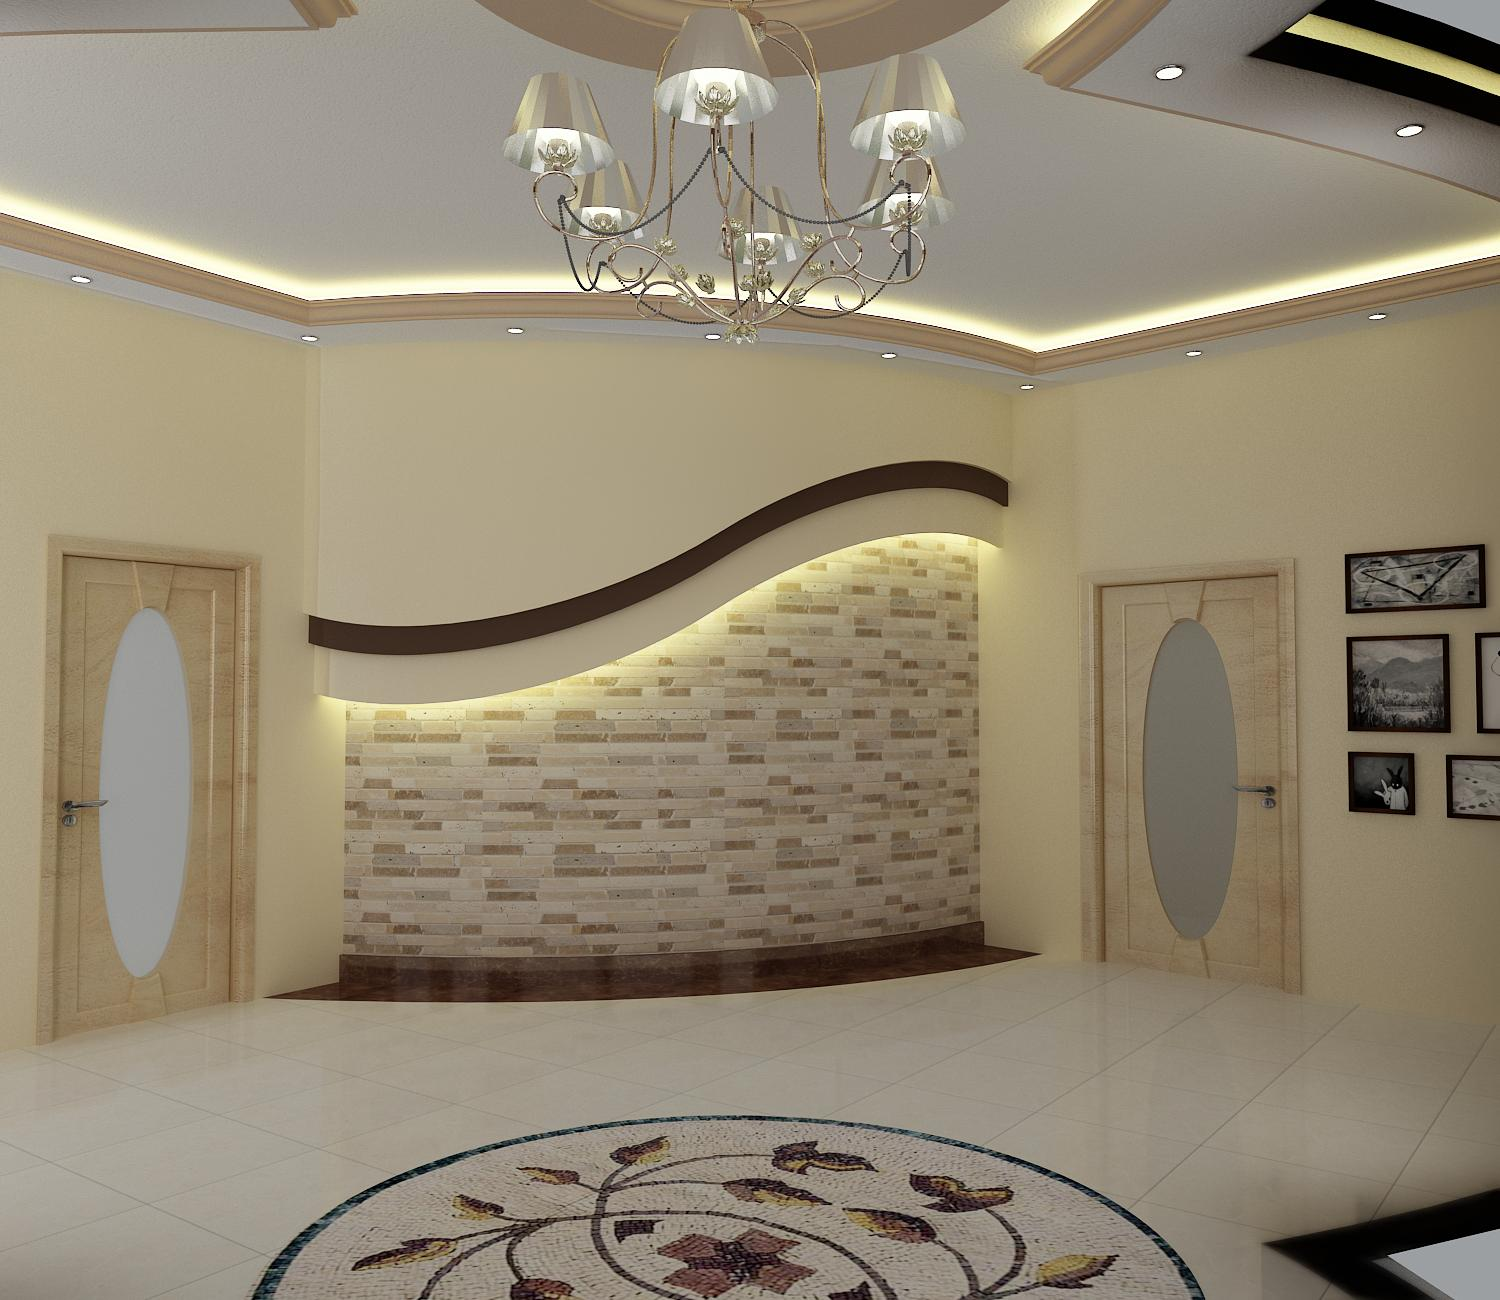 Wasim riaz interior design for a arabic mujlis for Pictures of interior designs